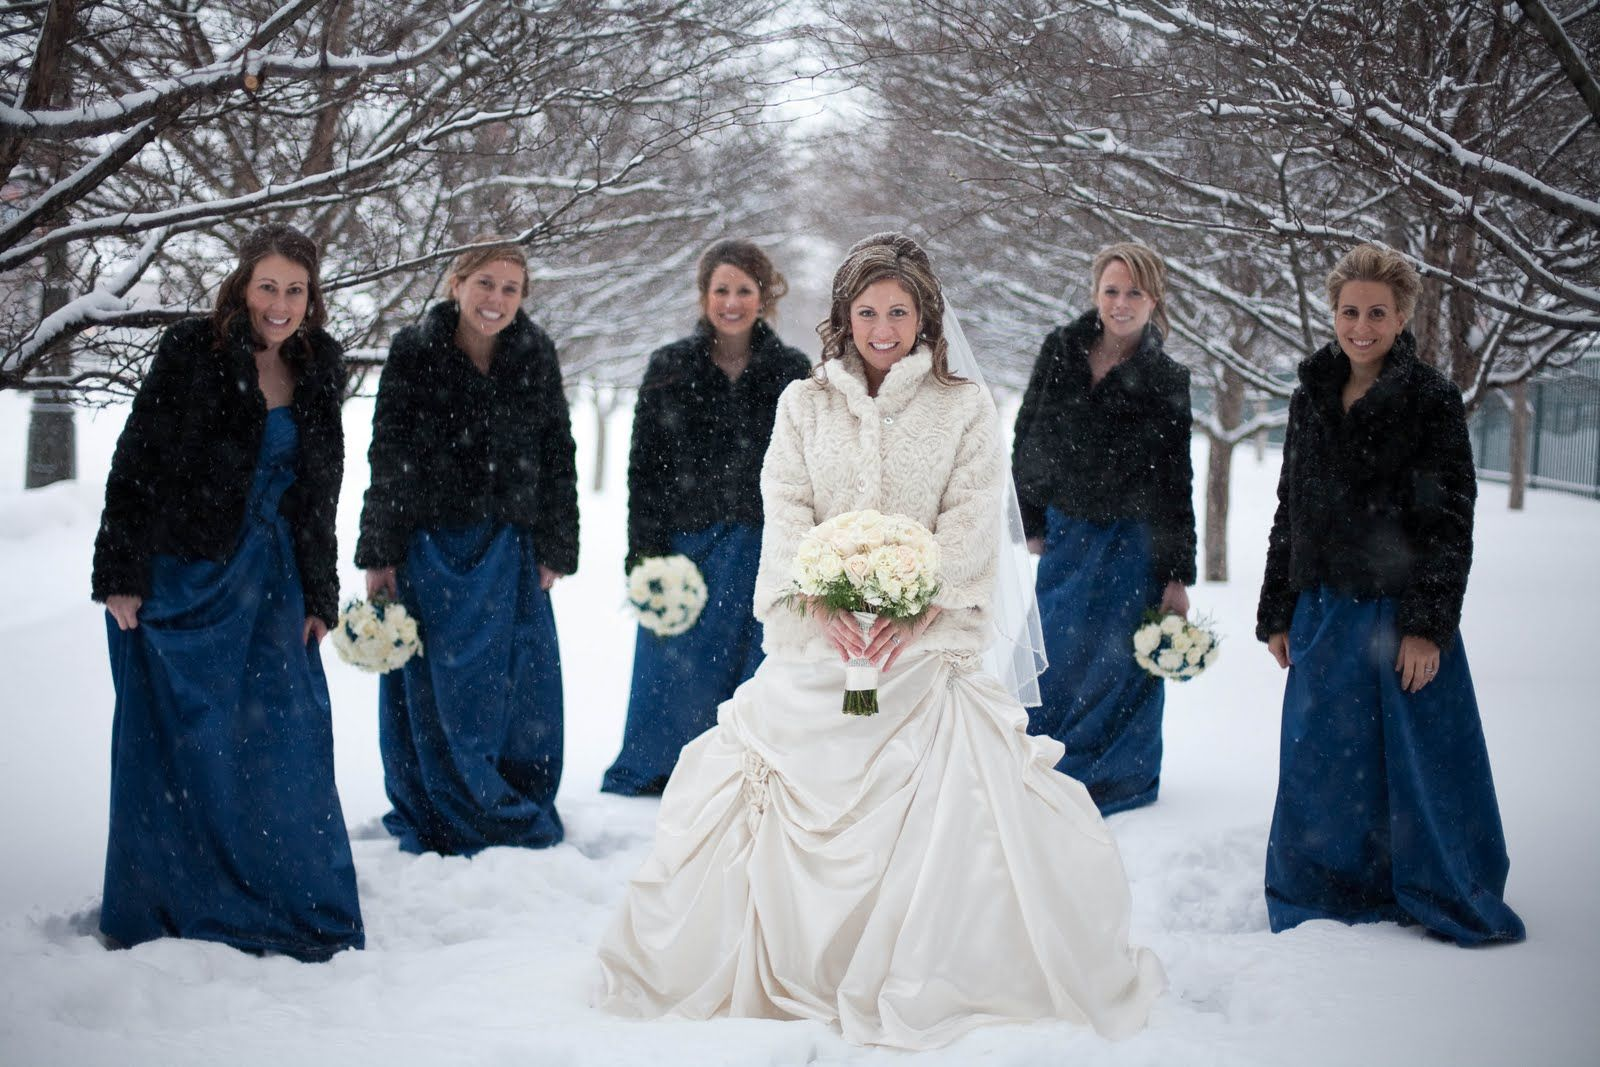 Gorgeous st patricks day wedding inspiration wedding winter gorgeous st patricks day wedding inspiration wedding winter weddings and weddings ombrellifo Images